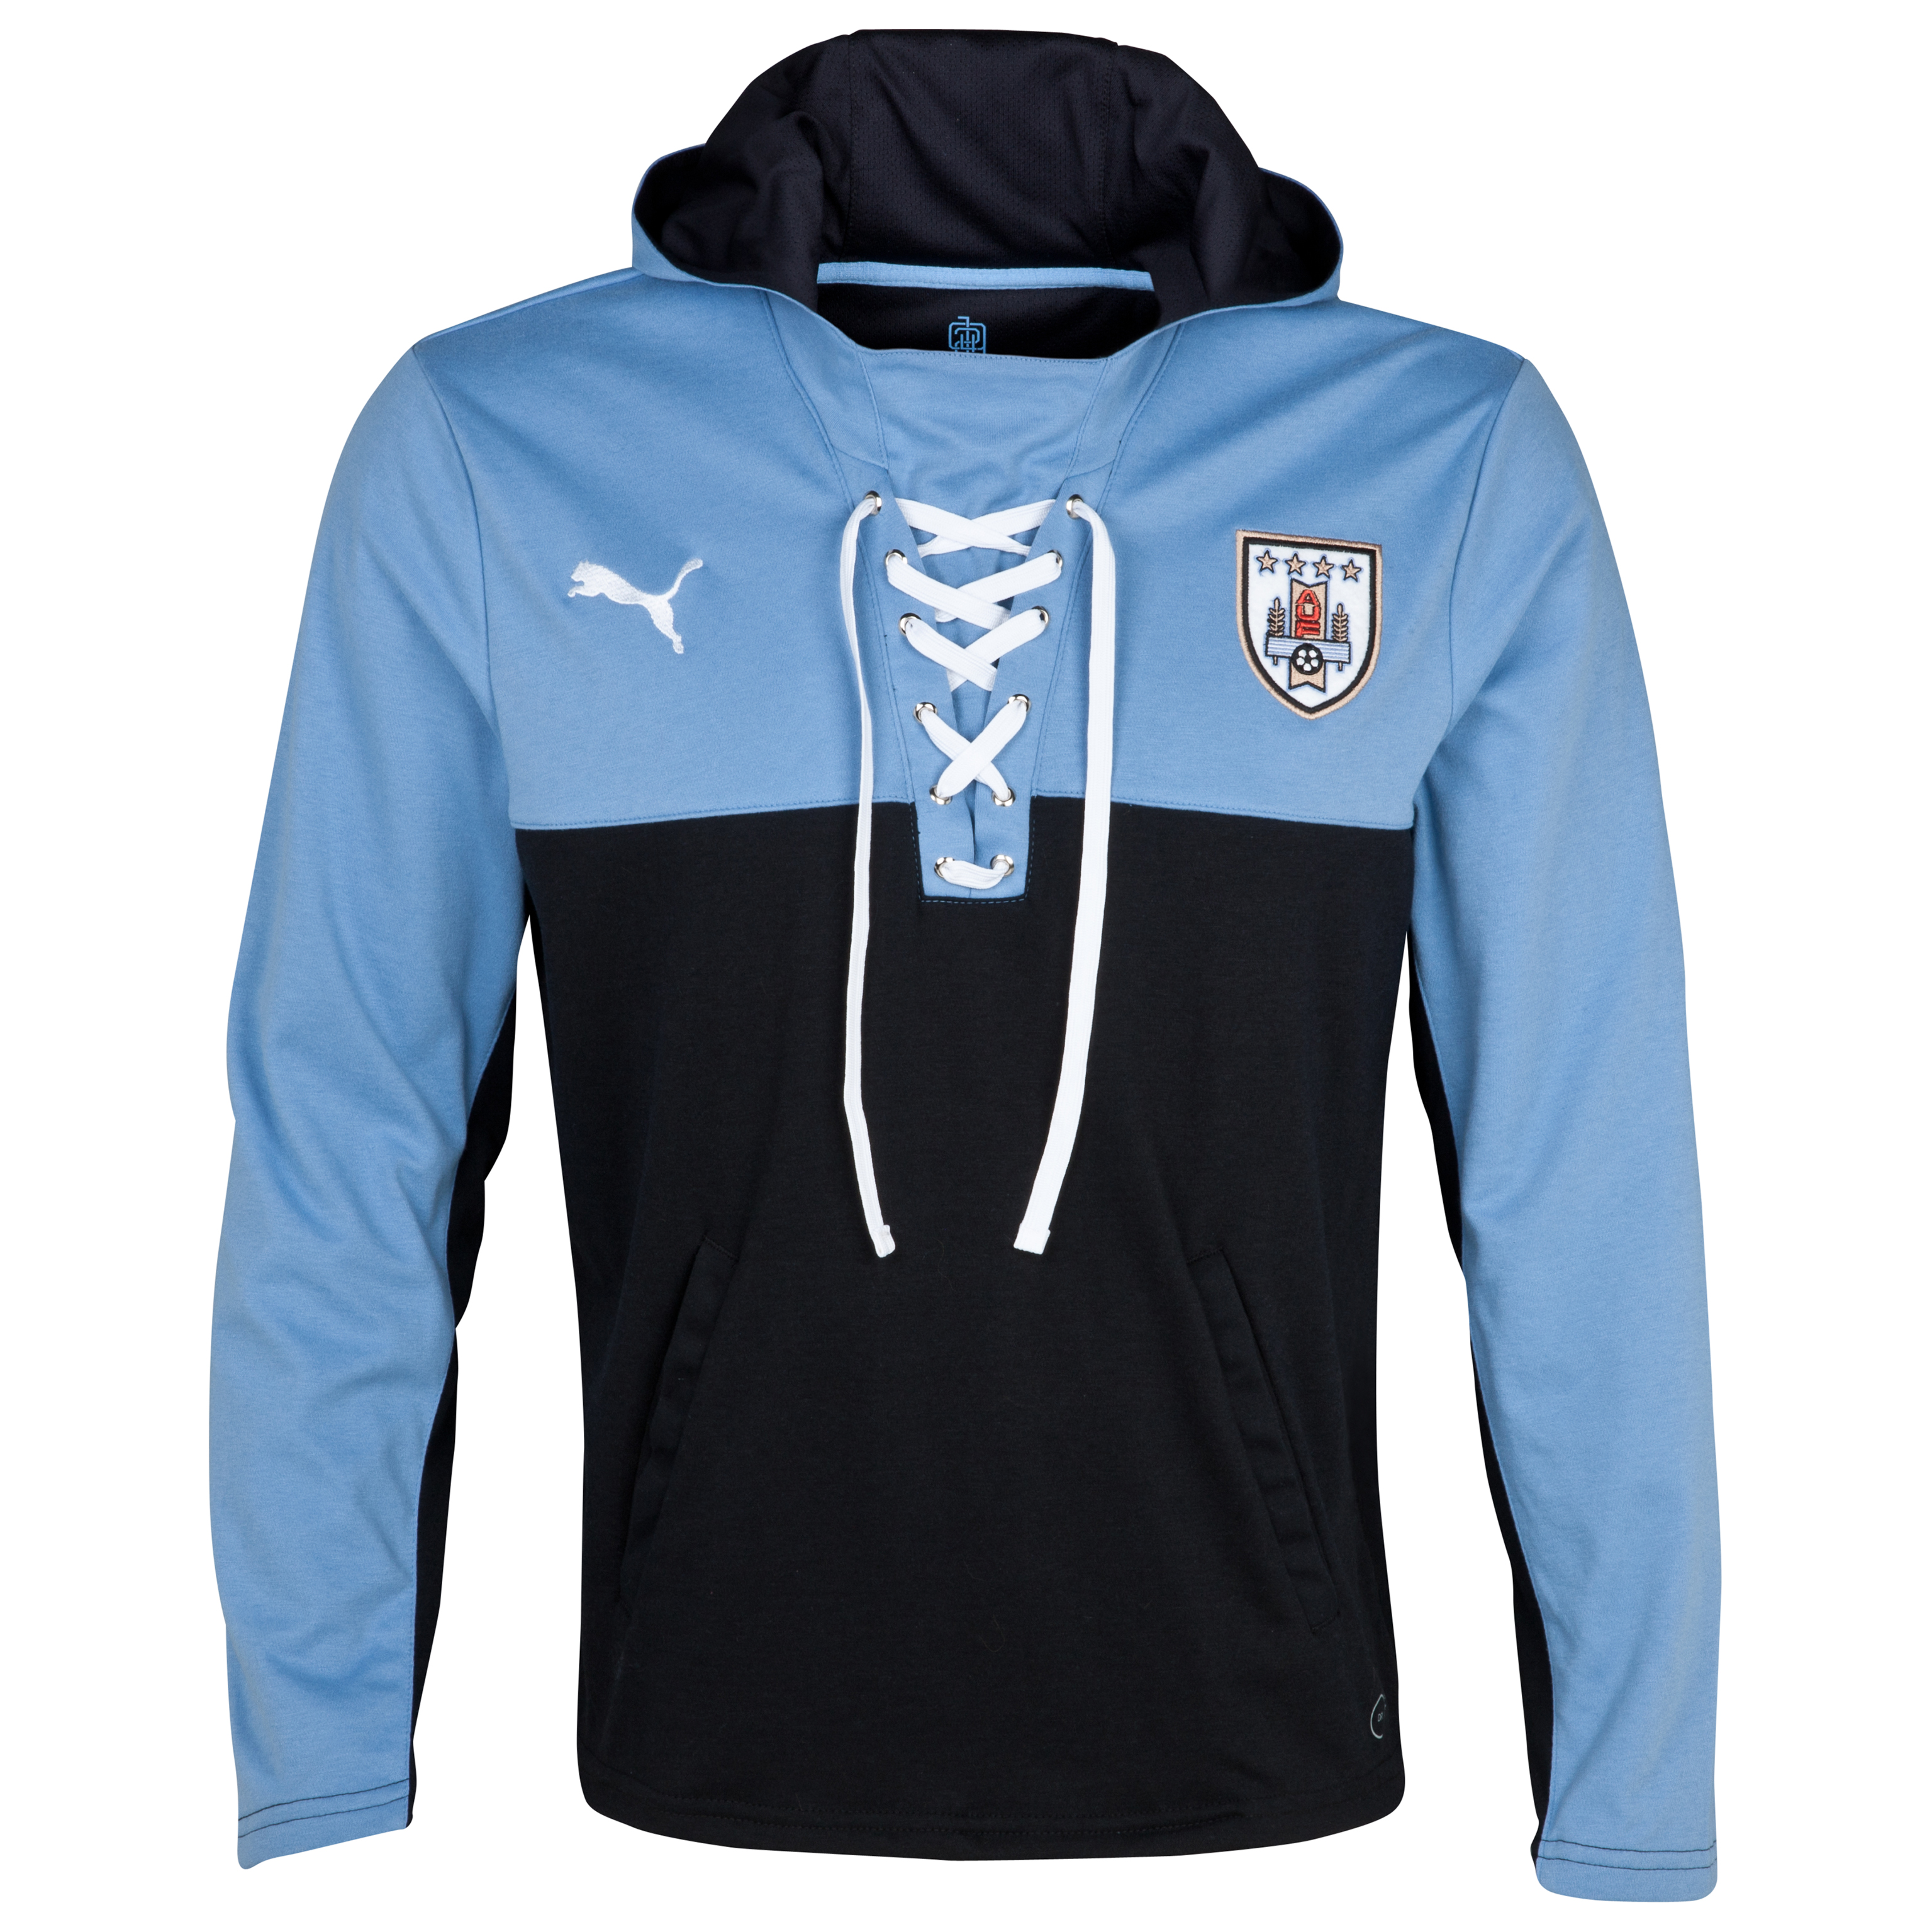 Puma Uruguay Walk Out Jacket - Black/Silver Lake Blue